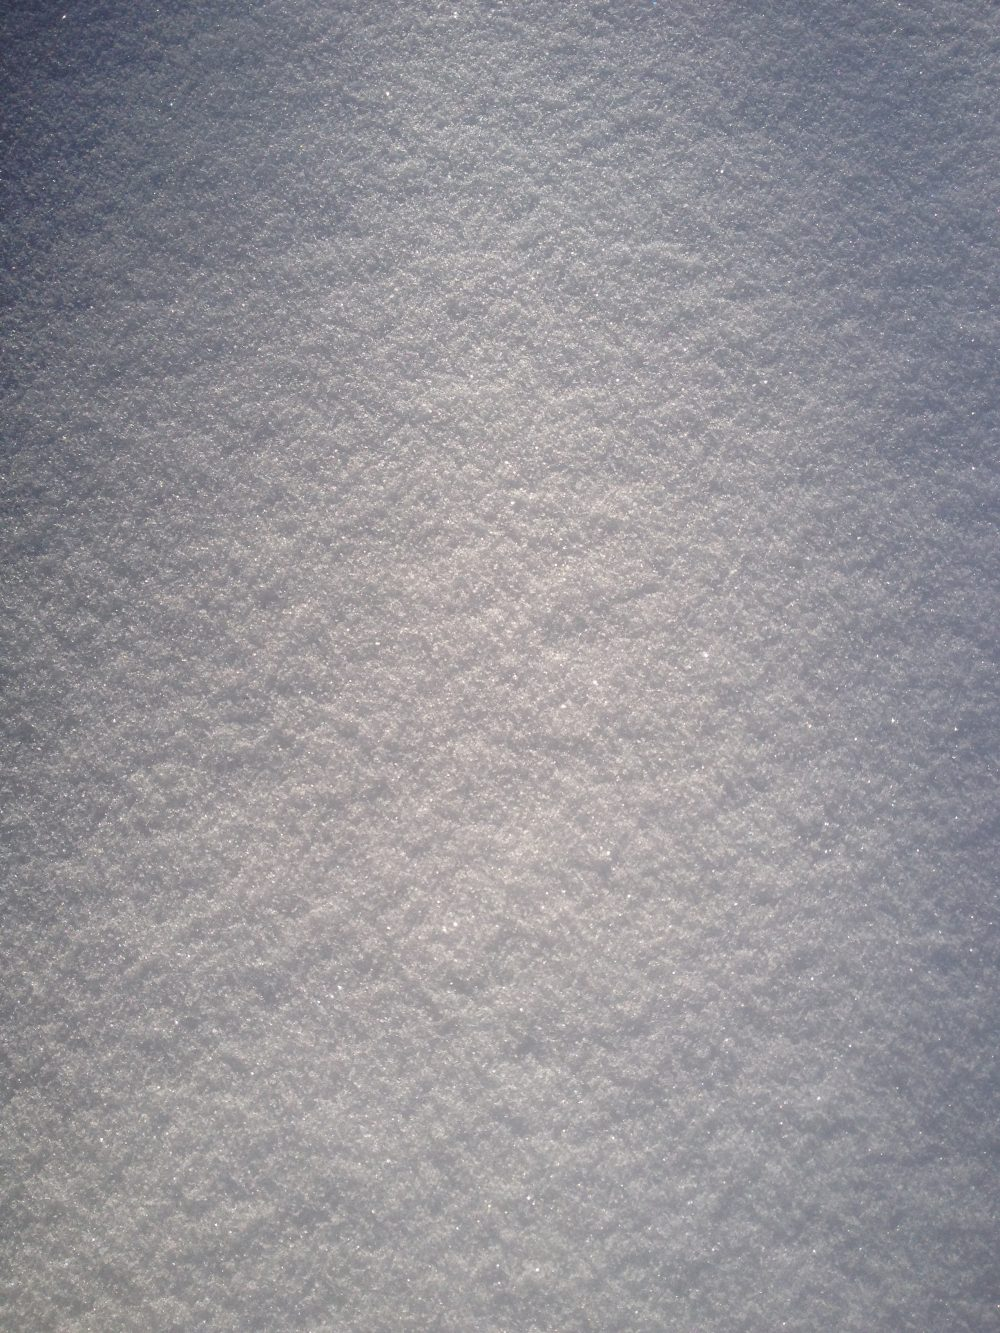 A Blank Canvas_Pristine yet treacherous.